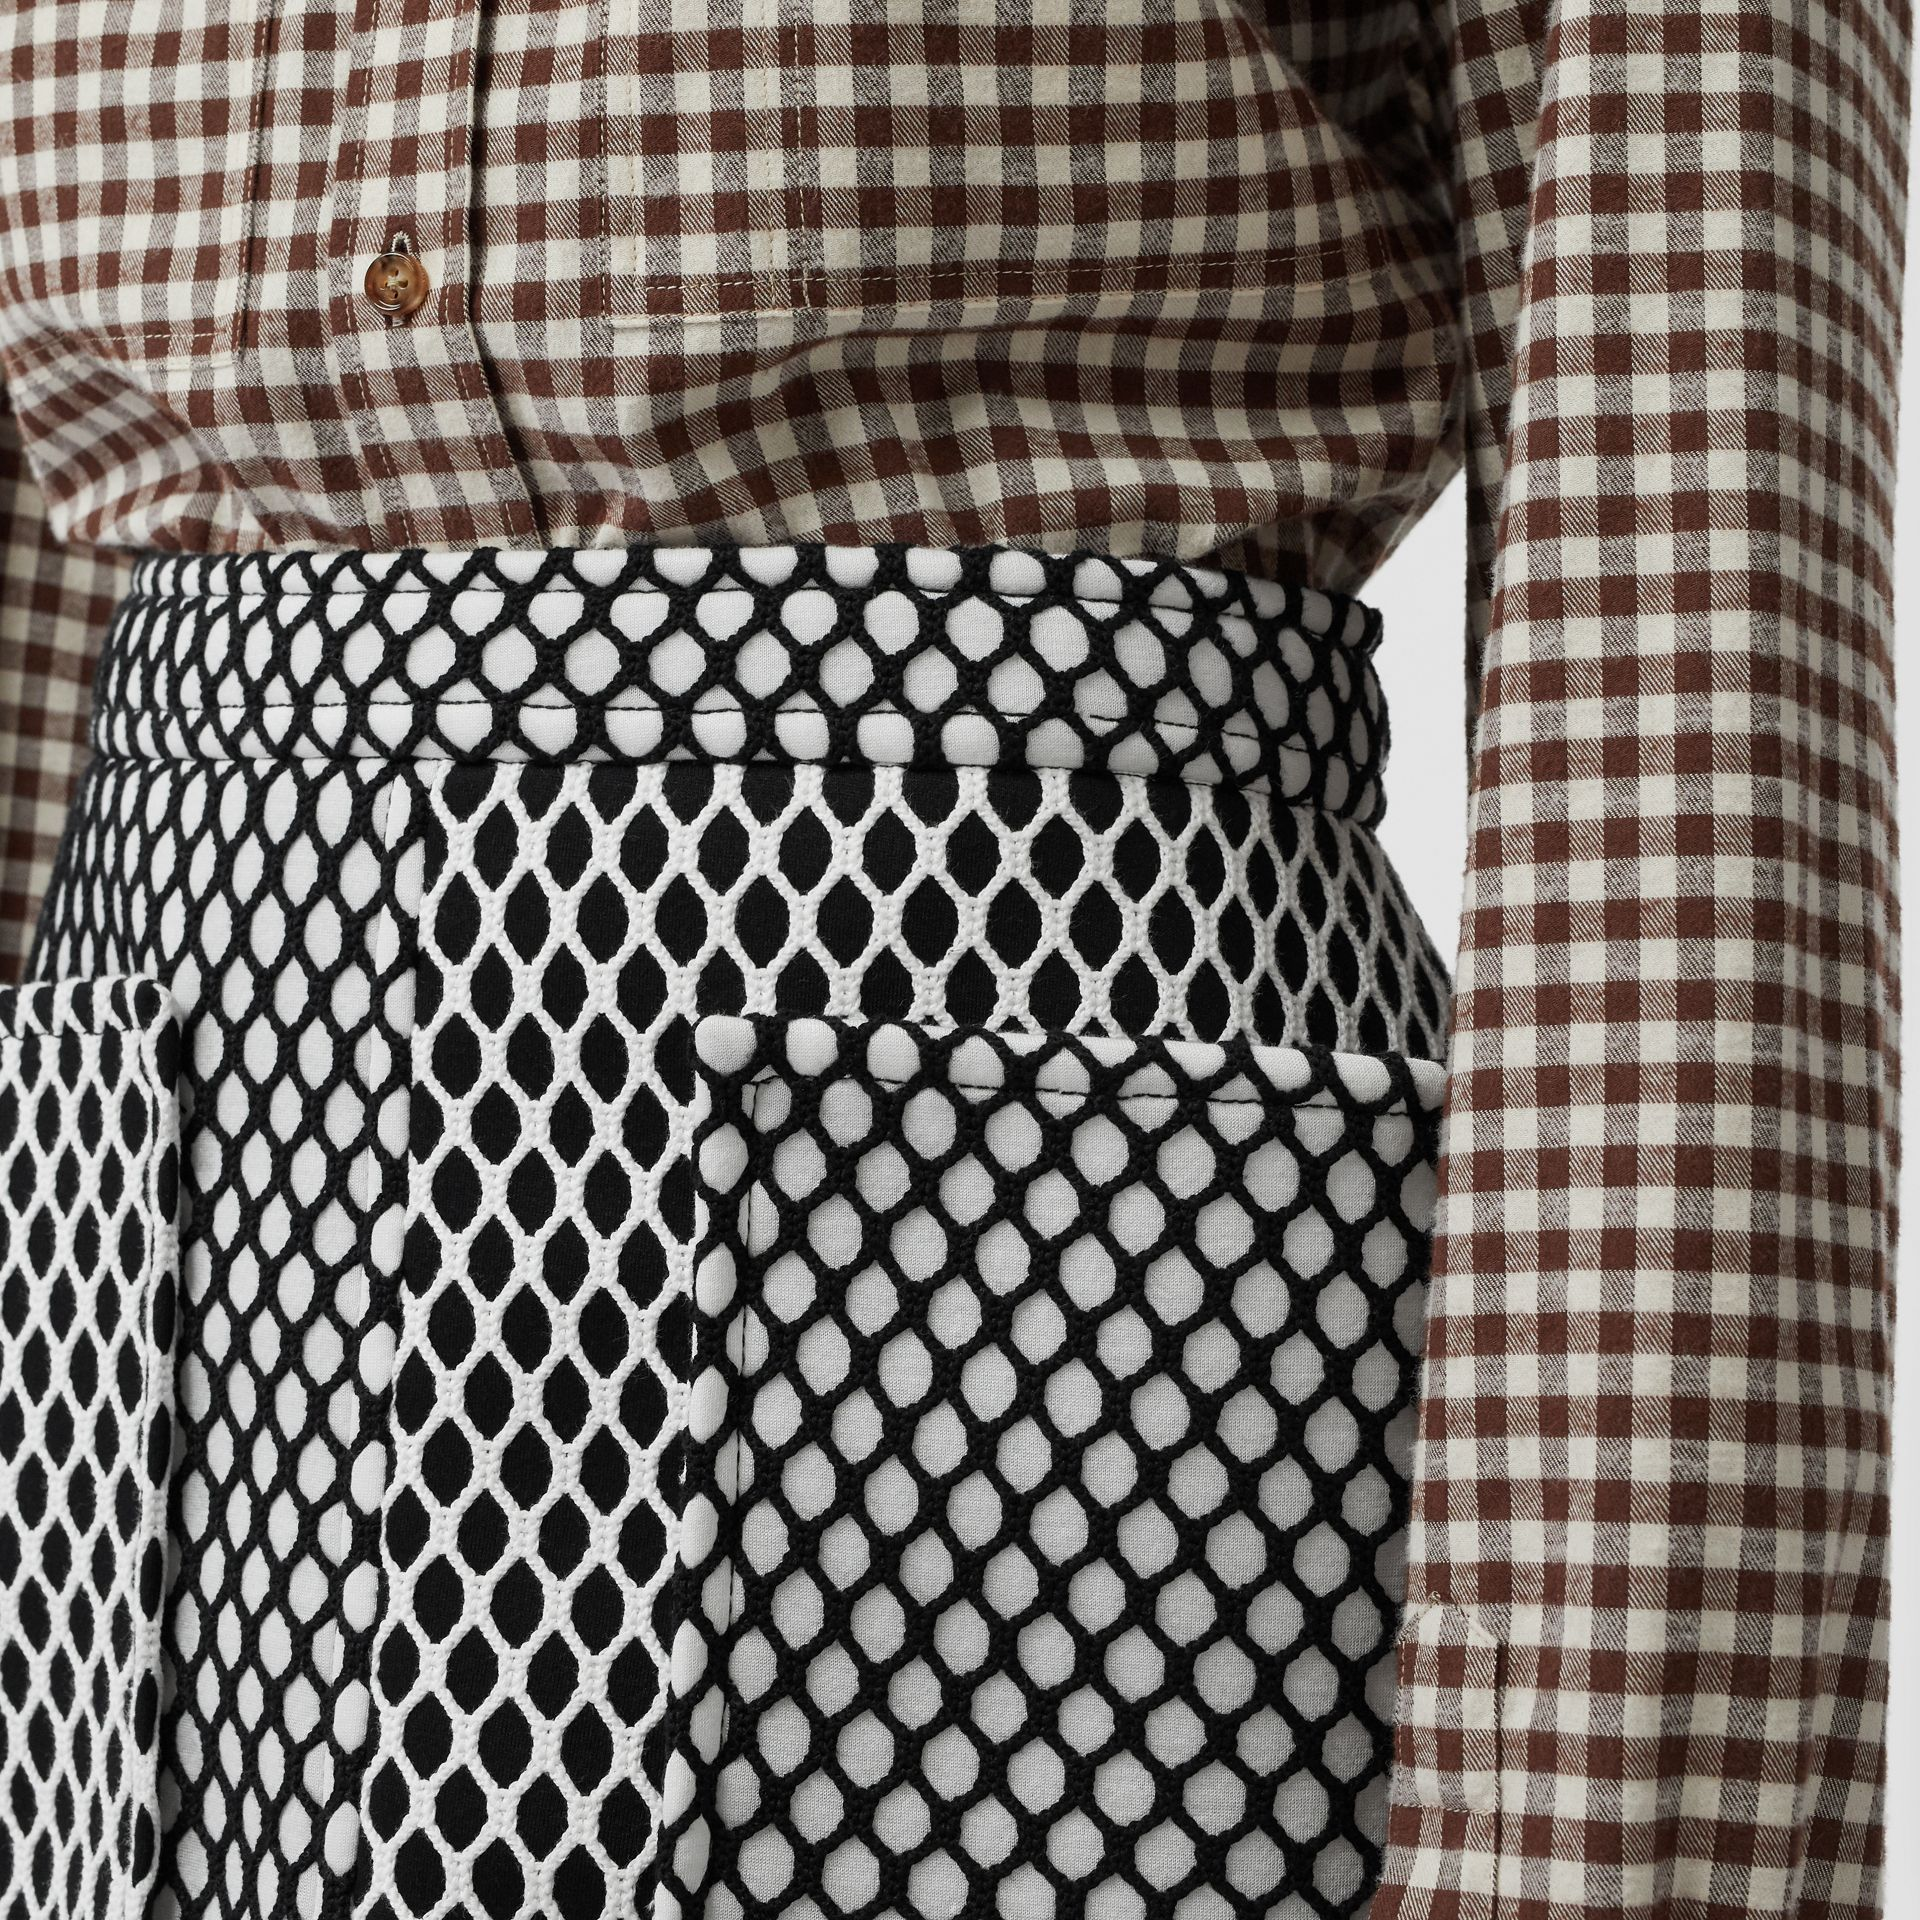 Pocket Detail Mesh and Neoprene Mini Skirt in Black - Women | Burberry United States - gallery image 1